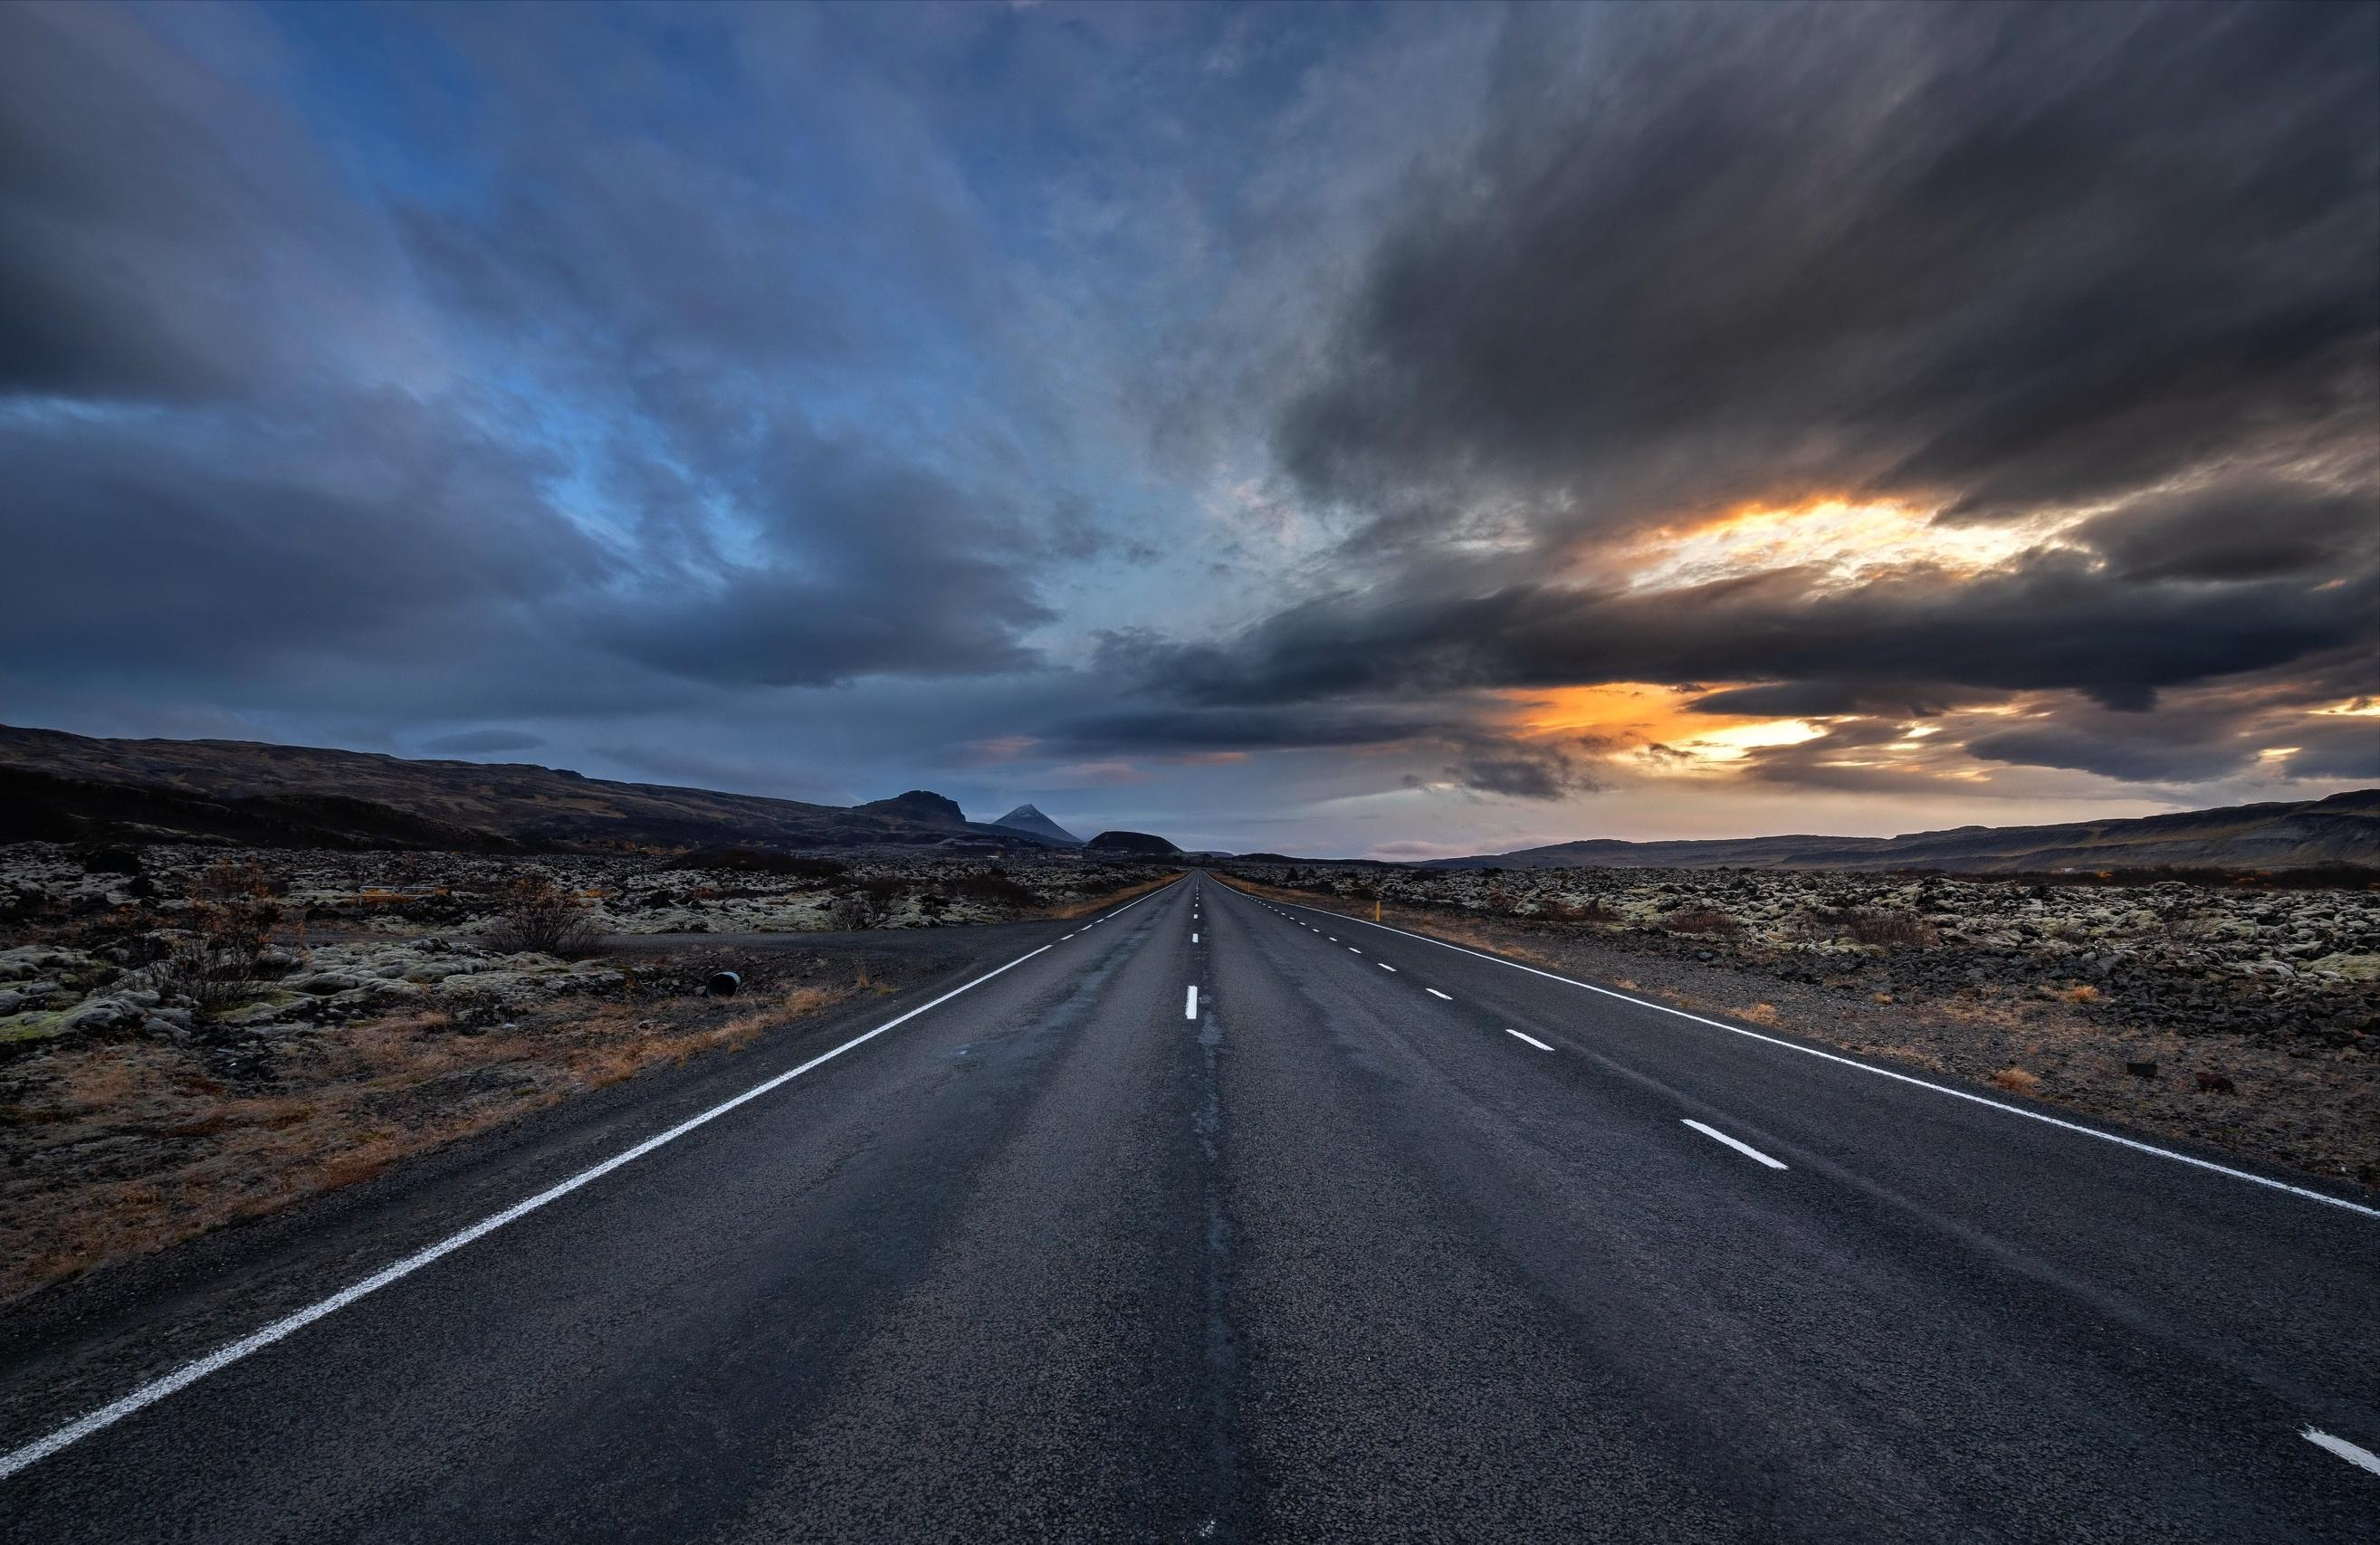 Cloudy Empty Road Wallpapers Wallpaper Cave